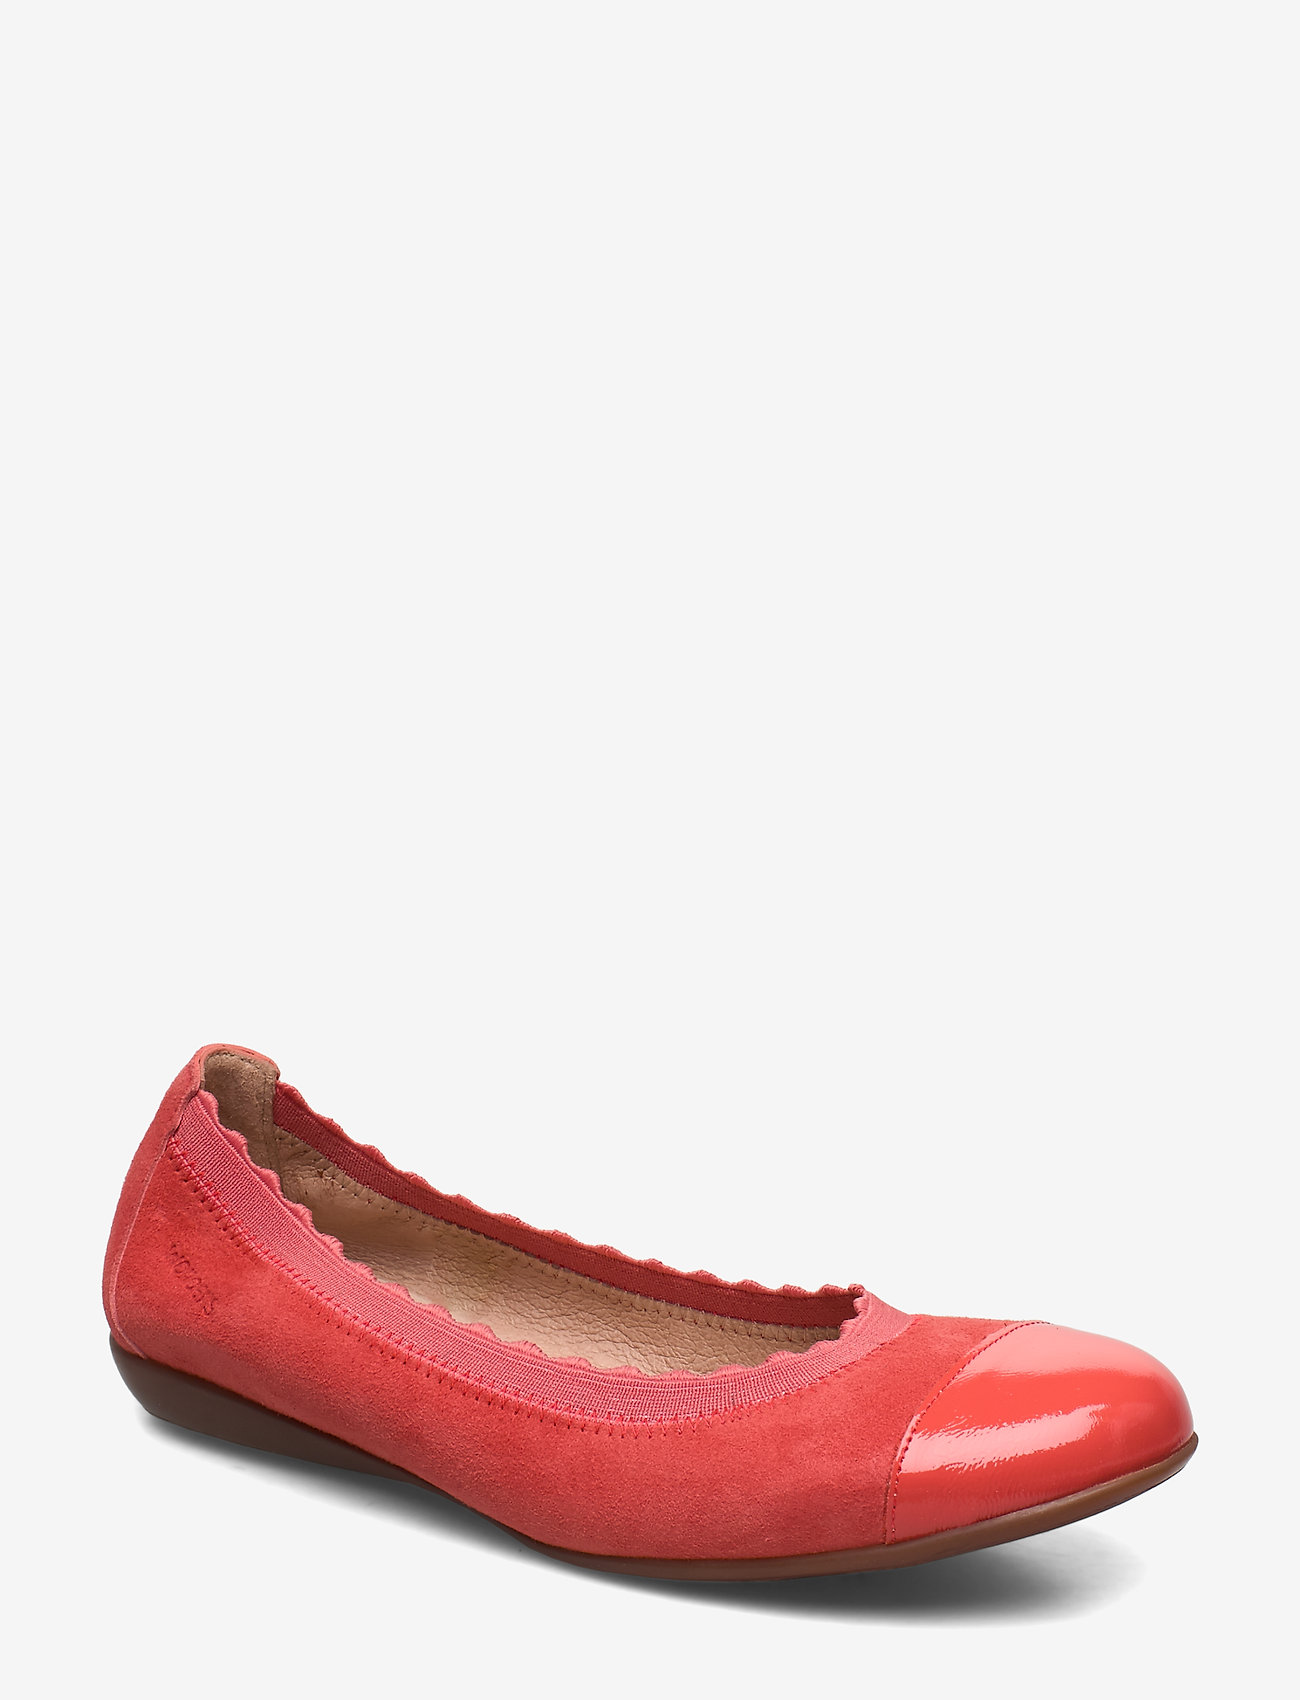 Wonders - A-6170 - loafers - coral - 0